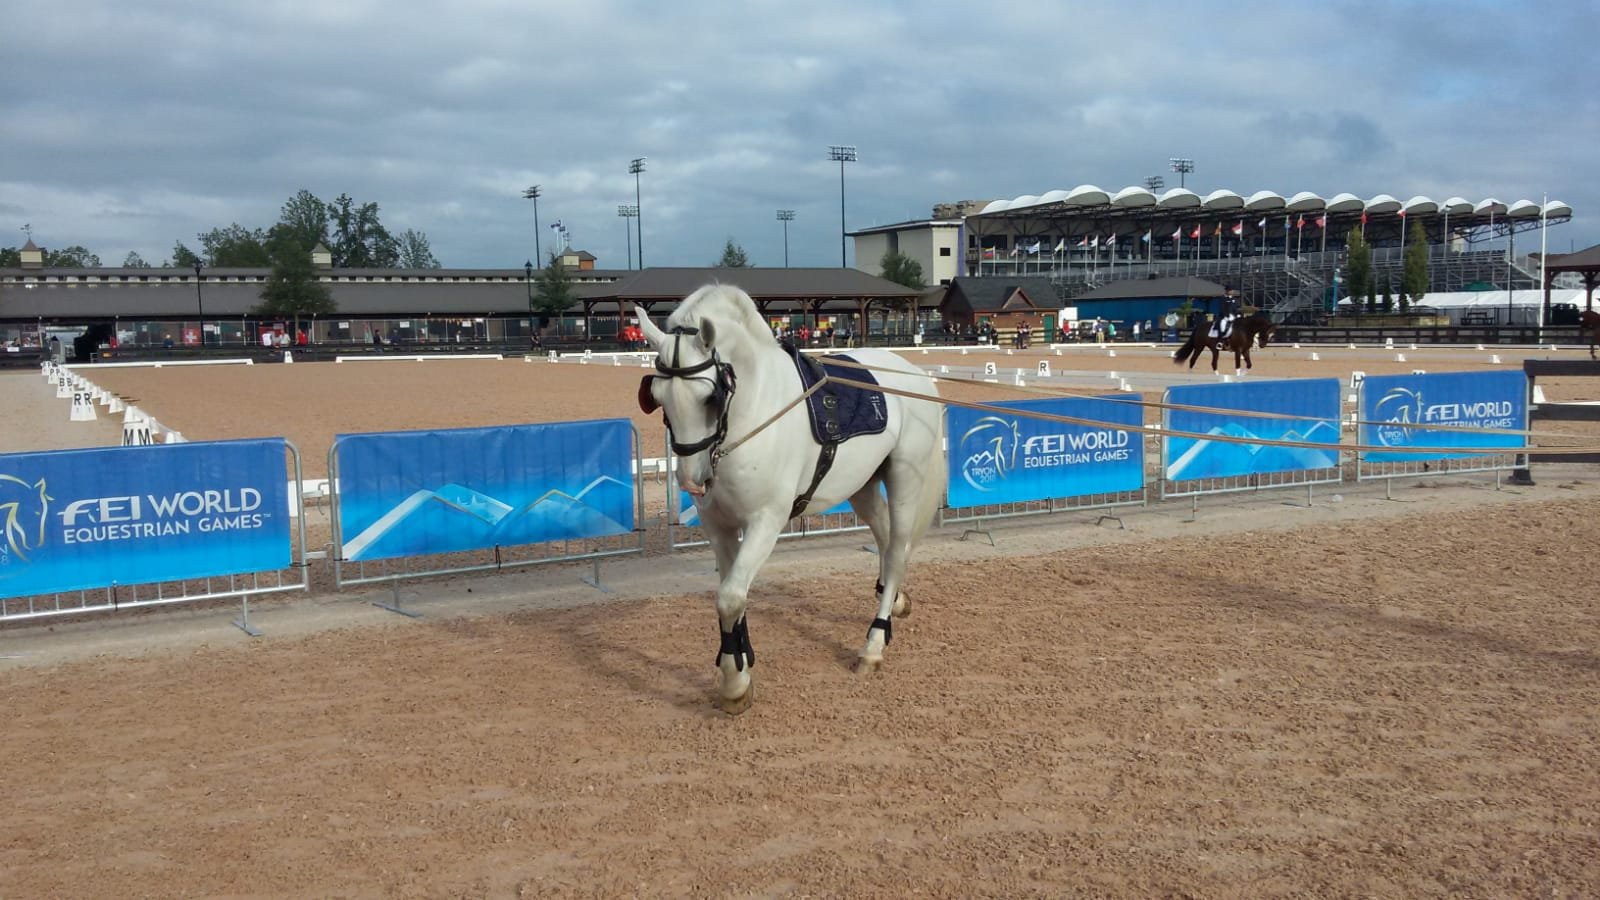 Kladruber horses at the centre of events at the FEI World Equestrian Games in the USA, 13 September 2018